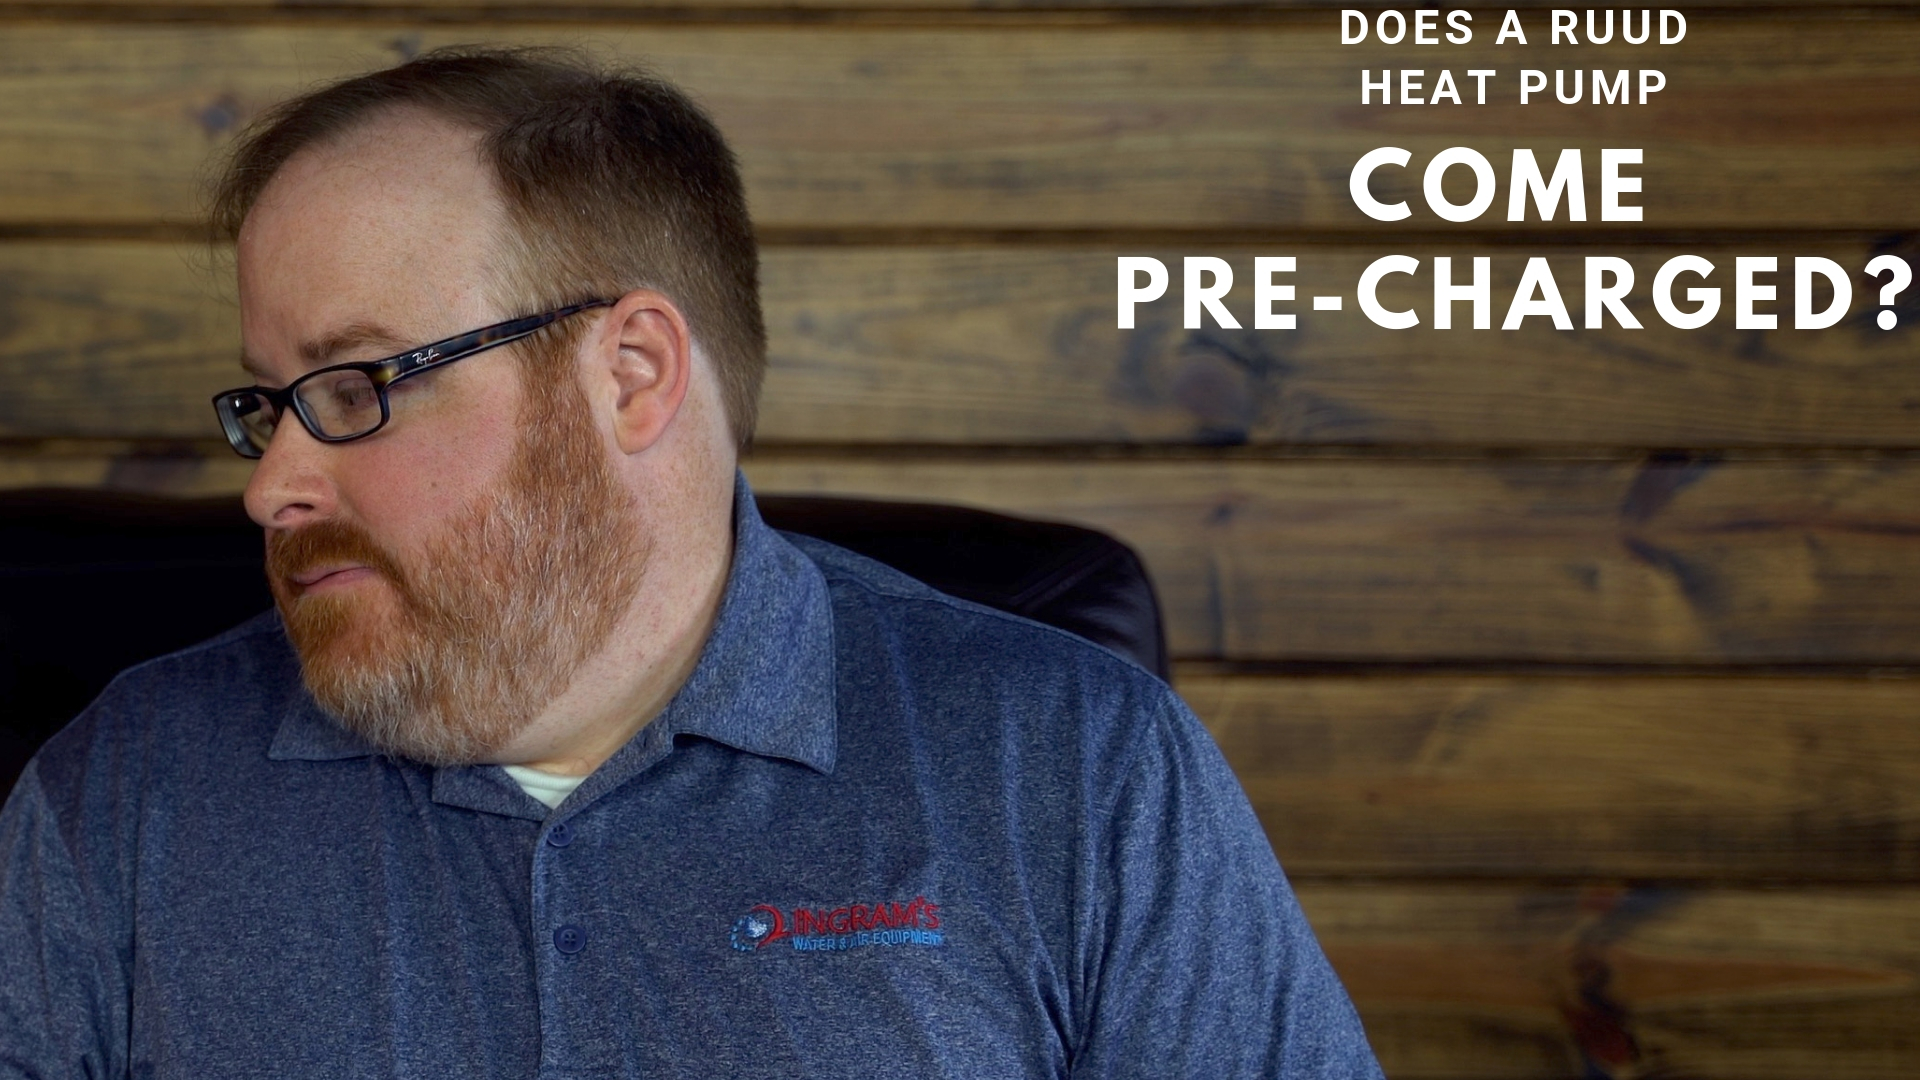 Does a Ruud Heat Pump Come Pre-Charged? - Ask the Expert Episode 139